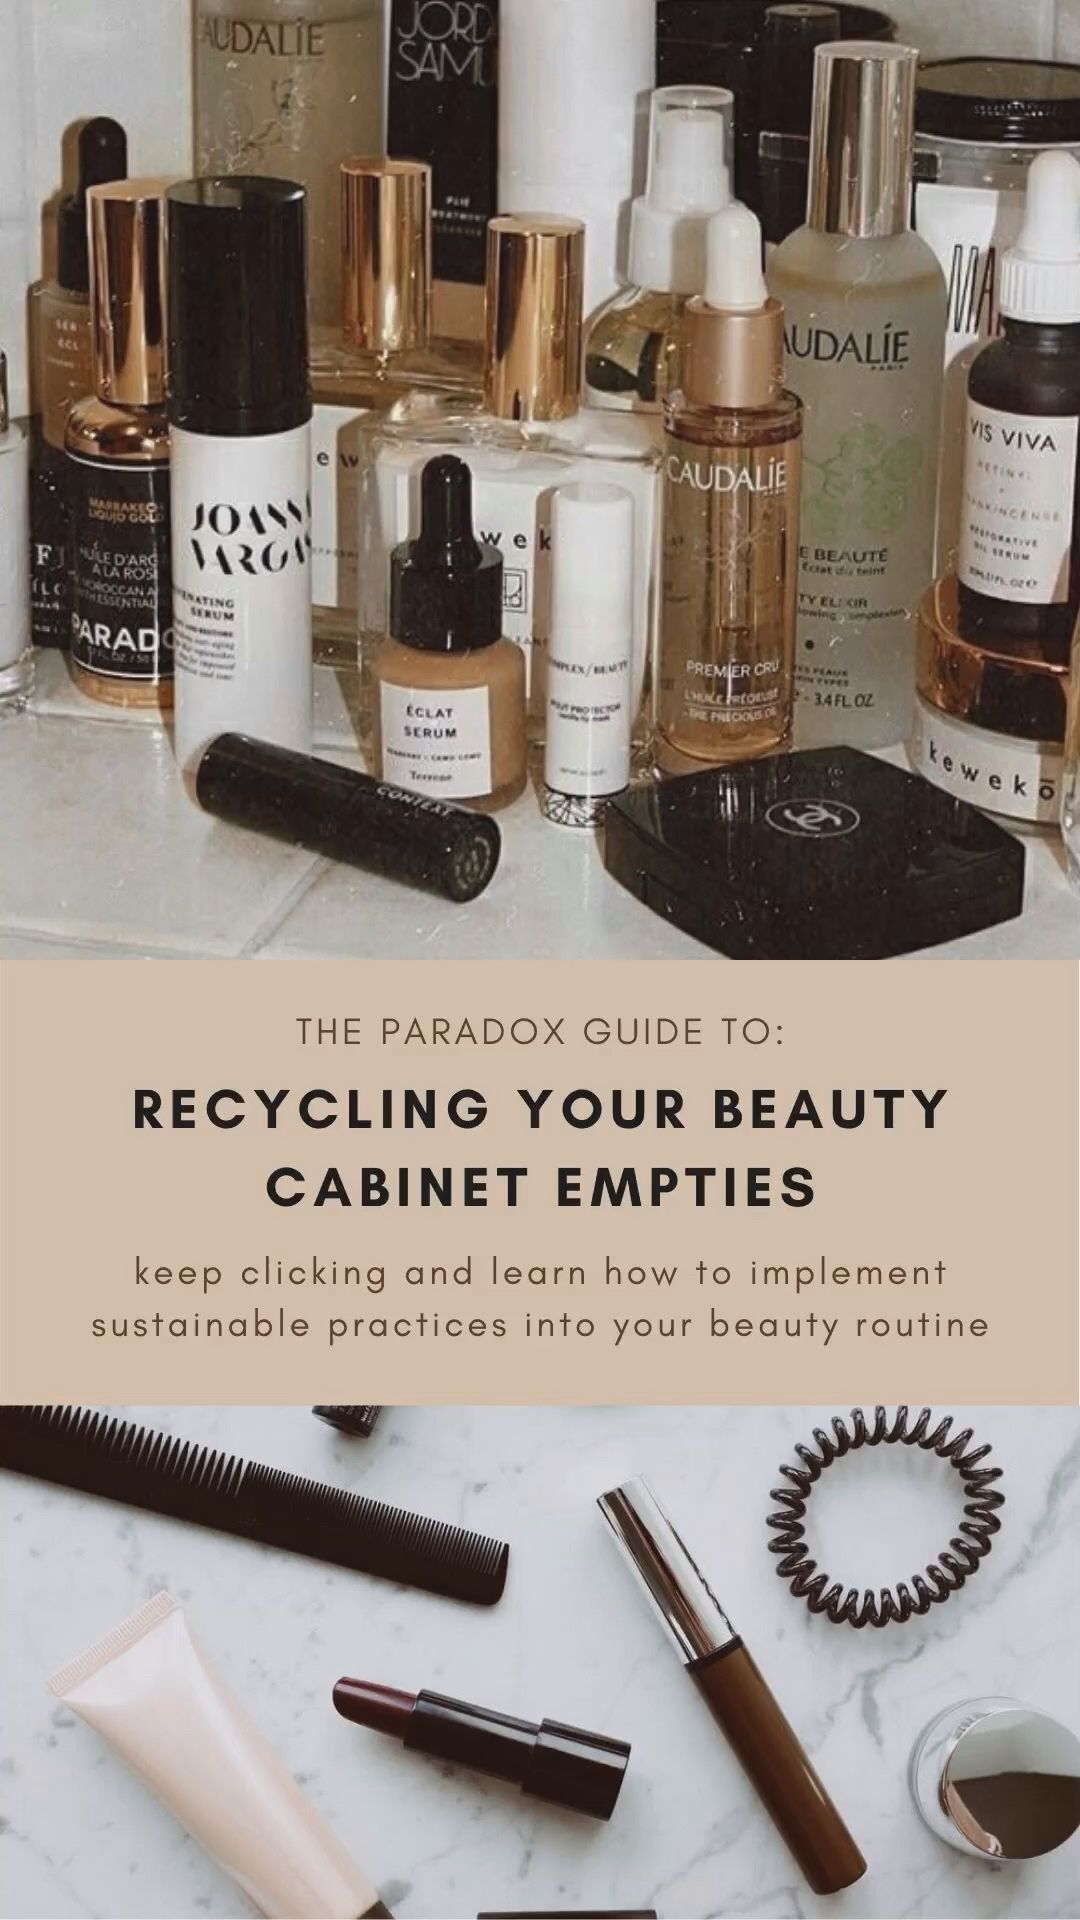 How To: Recycle Beauty Cabinet Empties